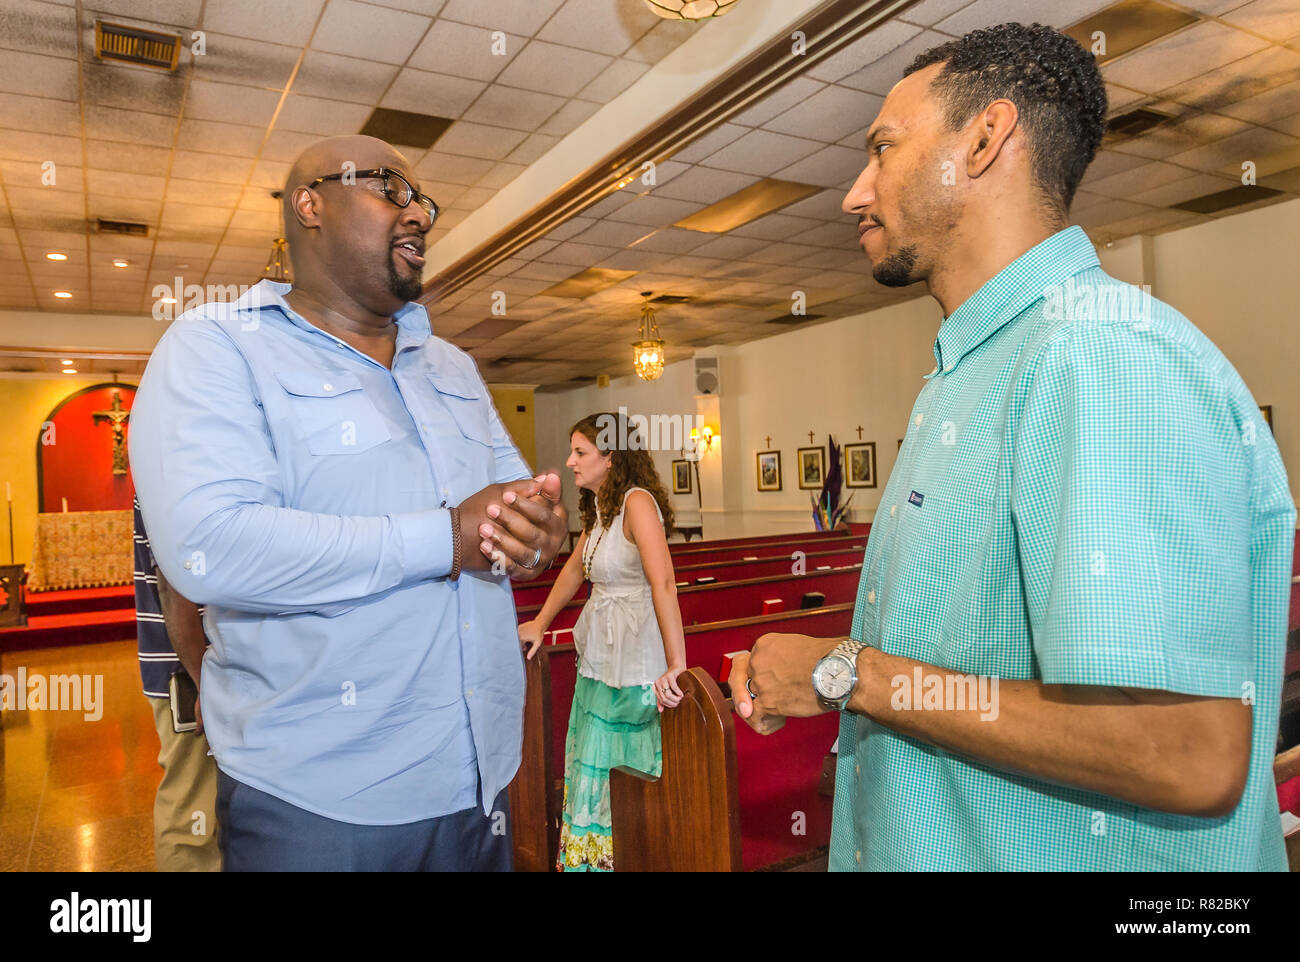 Urban Hope Community Church pastor Alton Hardy talks with church treasurer Dion Watts after the Sunday service, July 19, 2015, in Fairfield, Alabama. - Stock Image